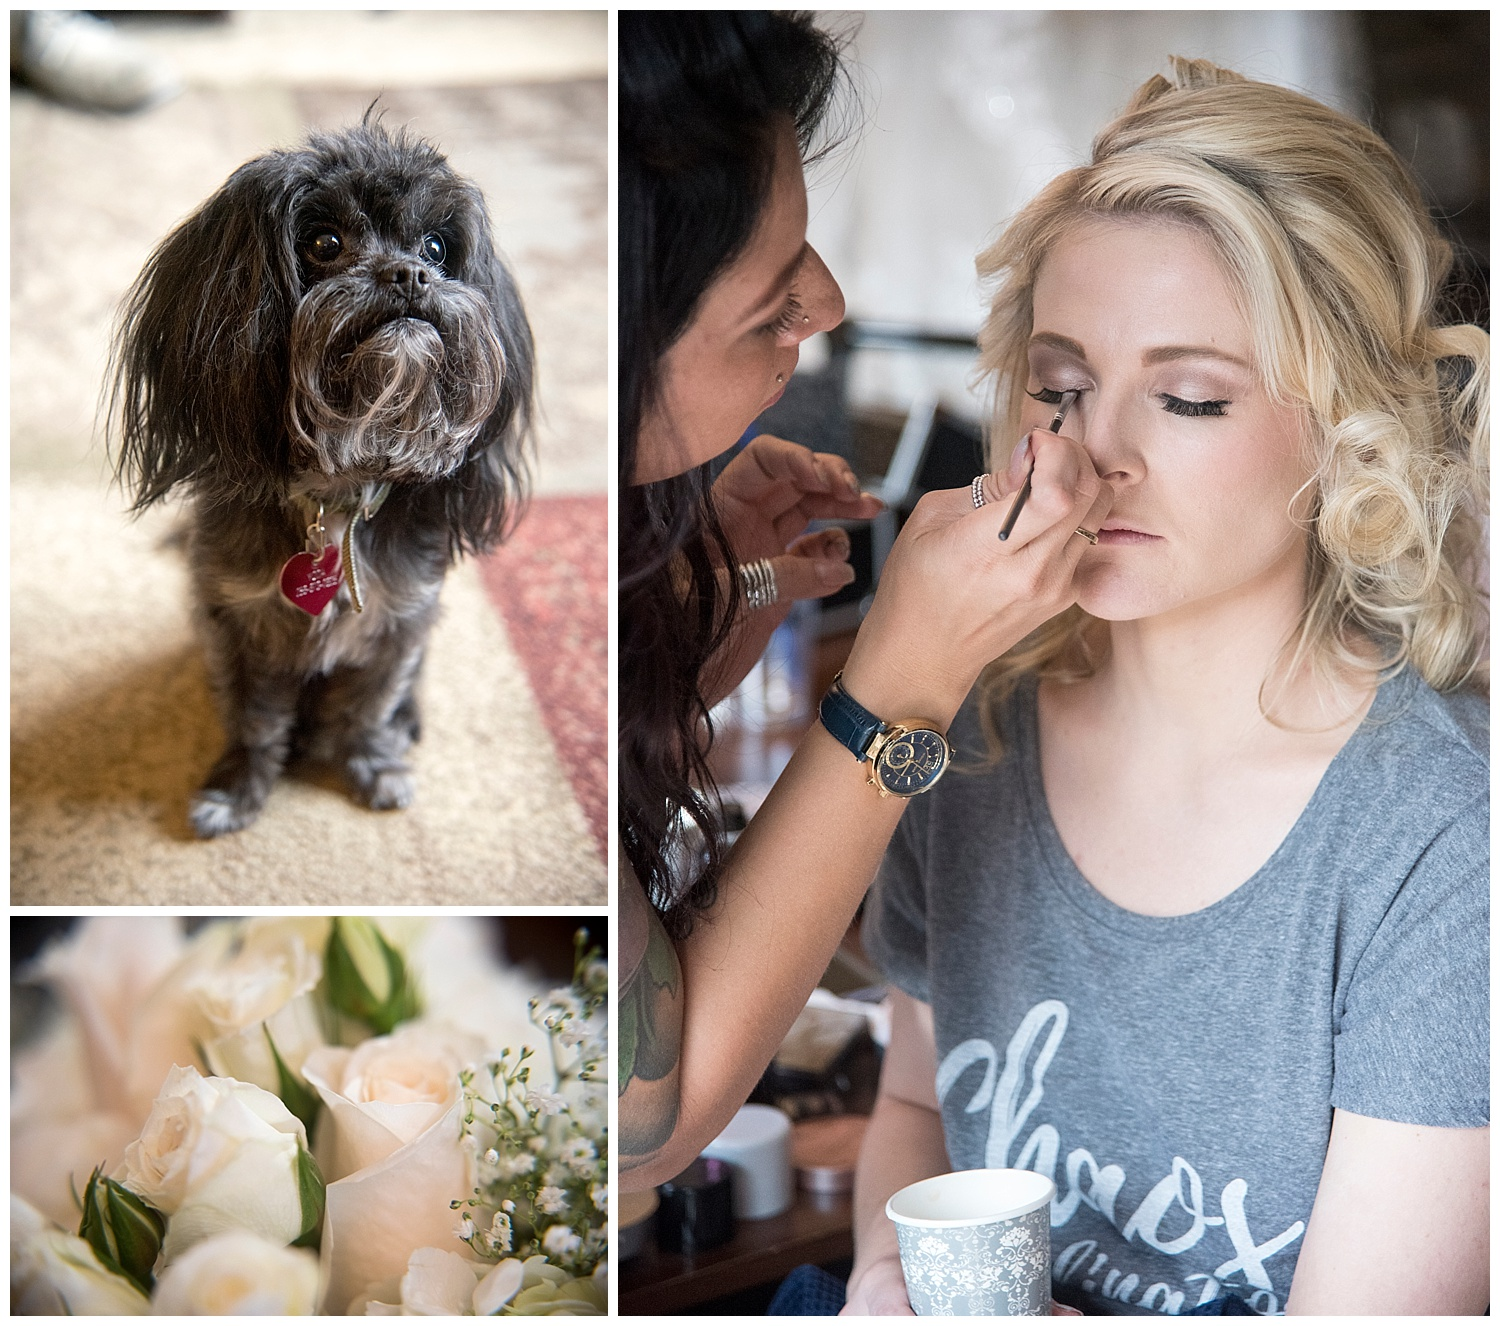 Collage of Bride, Dog, & Detail | Chris & Destiny's Destination Wedding | Breckenridge Wedding Photographer | Colorado Farm Wedding Photographer | Apollo Fields Wedding Photojournalism